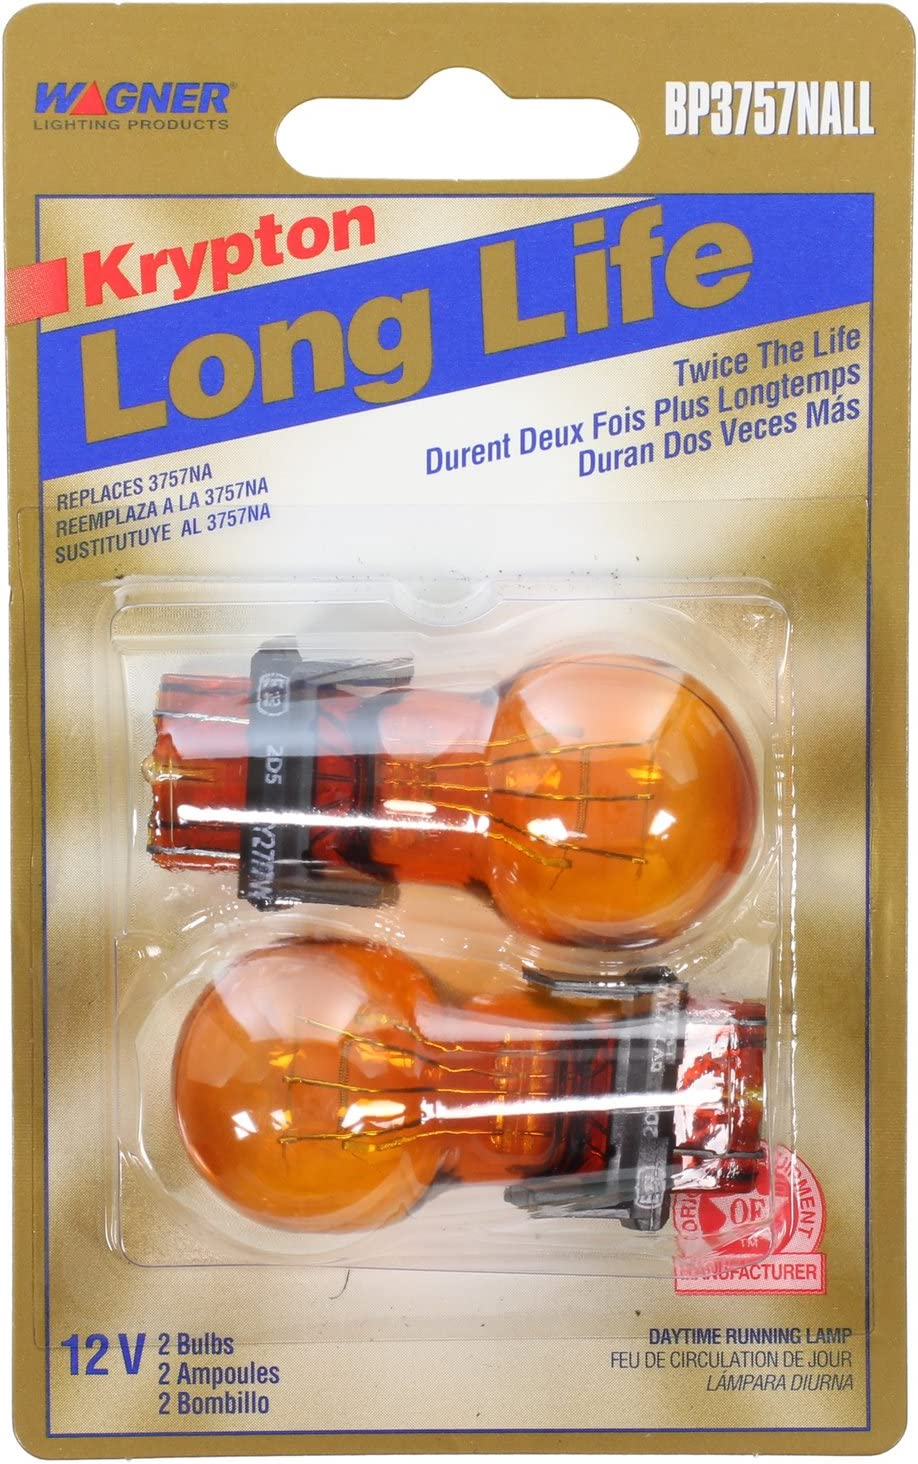 Contains 2 Bulbs SYLVANIA Amber Bulb Ideal for Parking and Turn Signal Applications. Side Marker 3757A Long Life Miniature